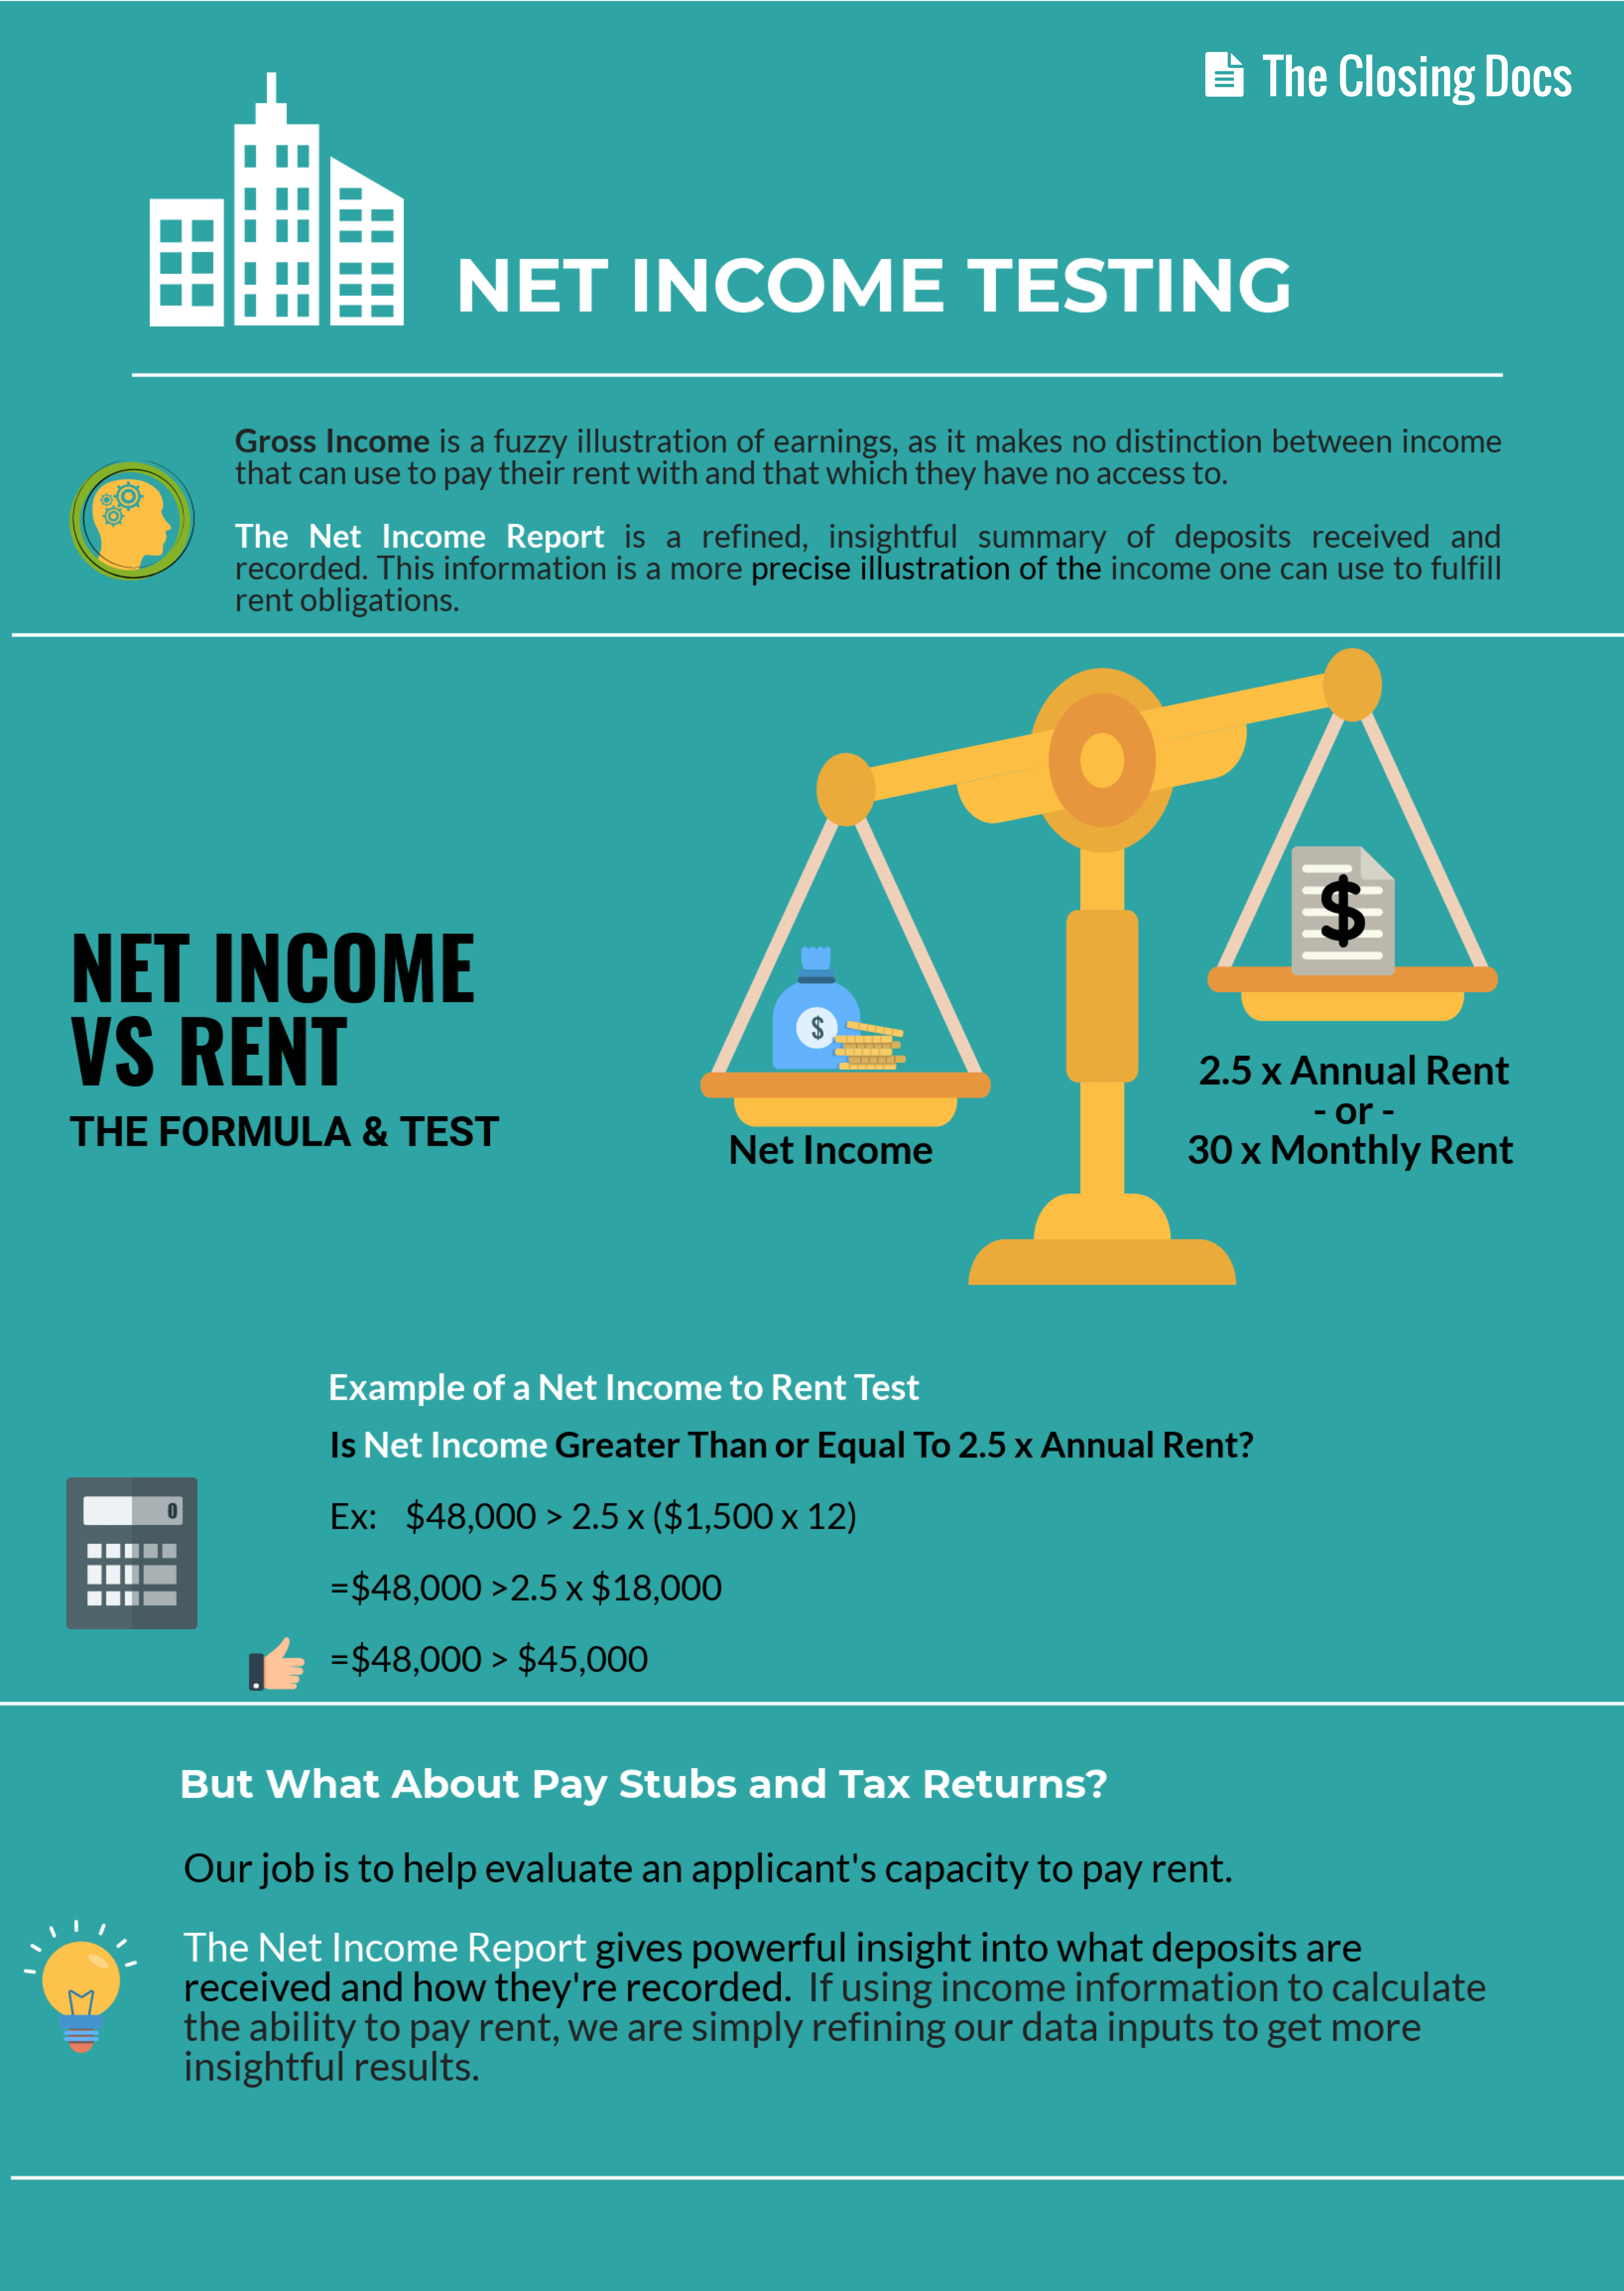 Use net income to verify your tenant's income